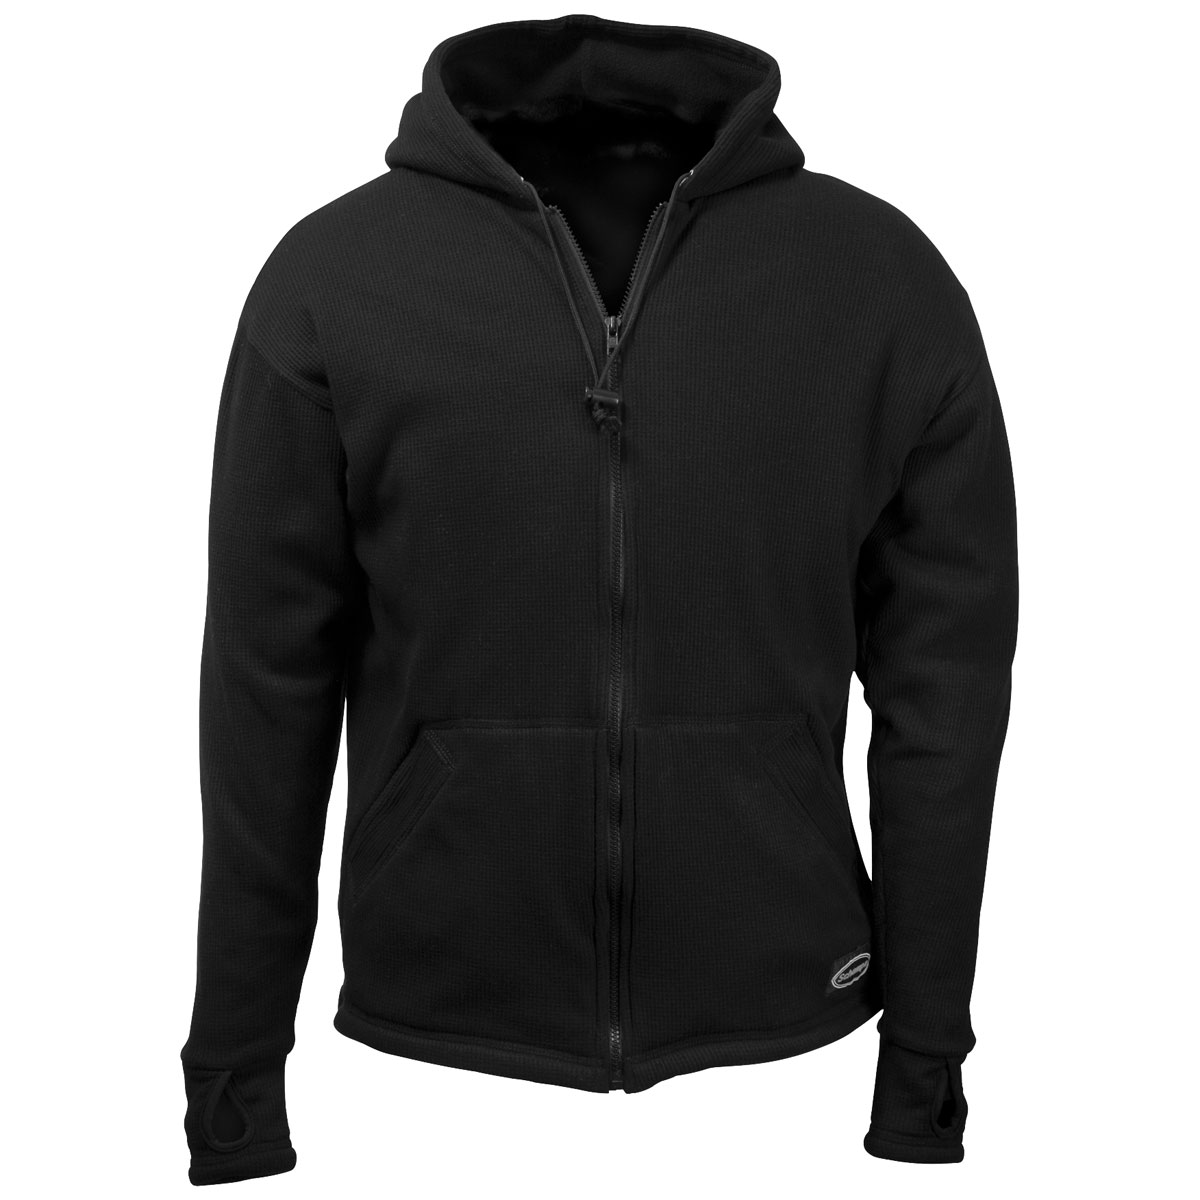 Schampa Men's Old School Solid Fleece Lined Thermal Black Hoodie